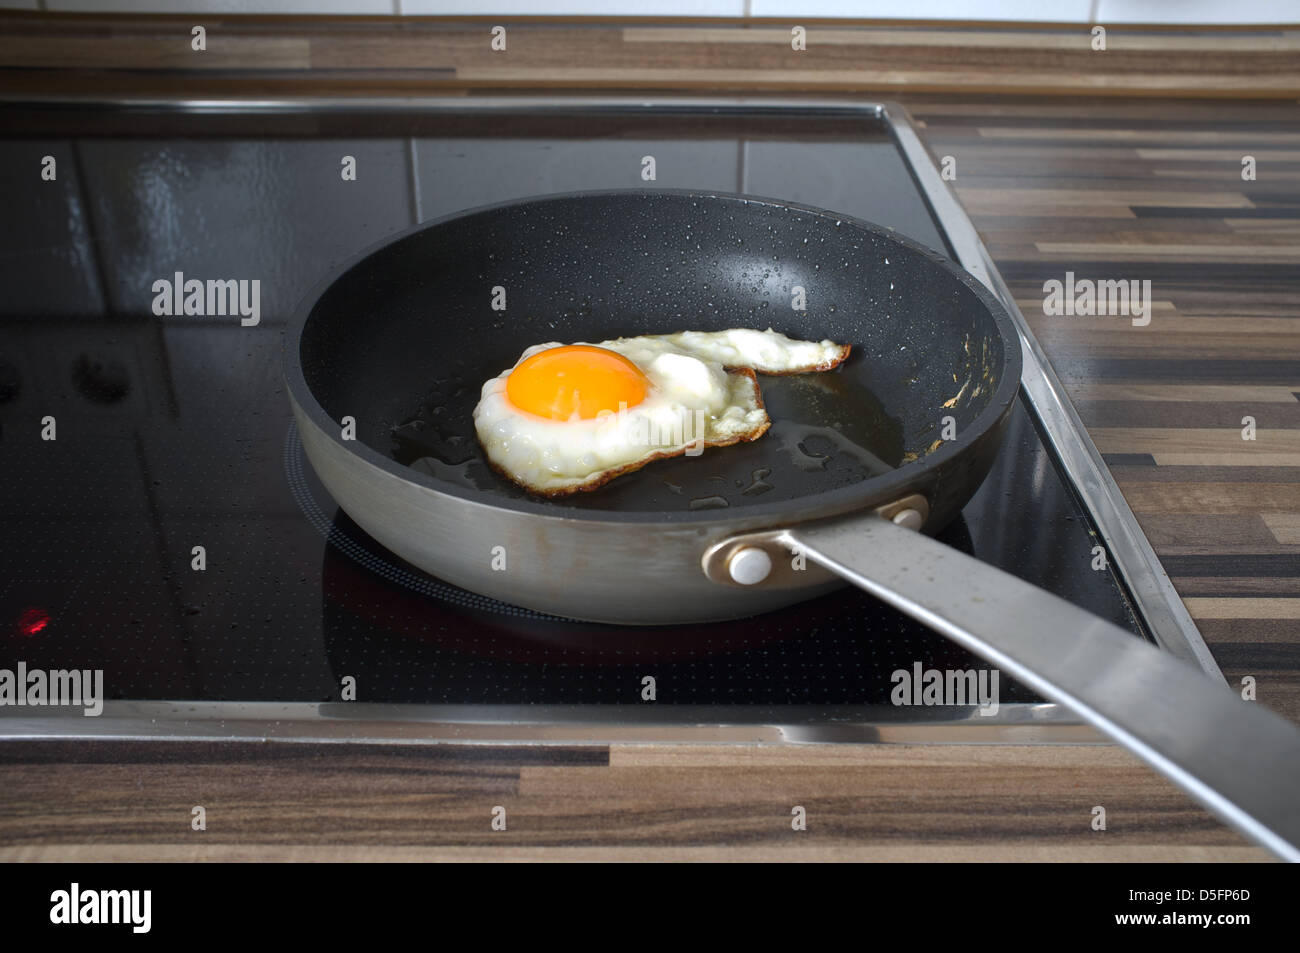 Fried egg in frying pan - Stock Image